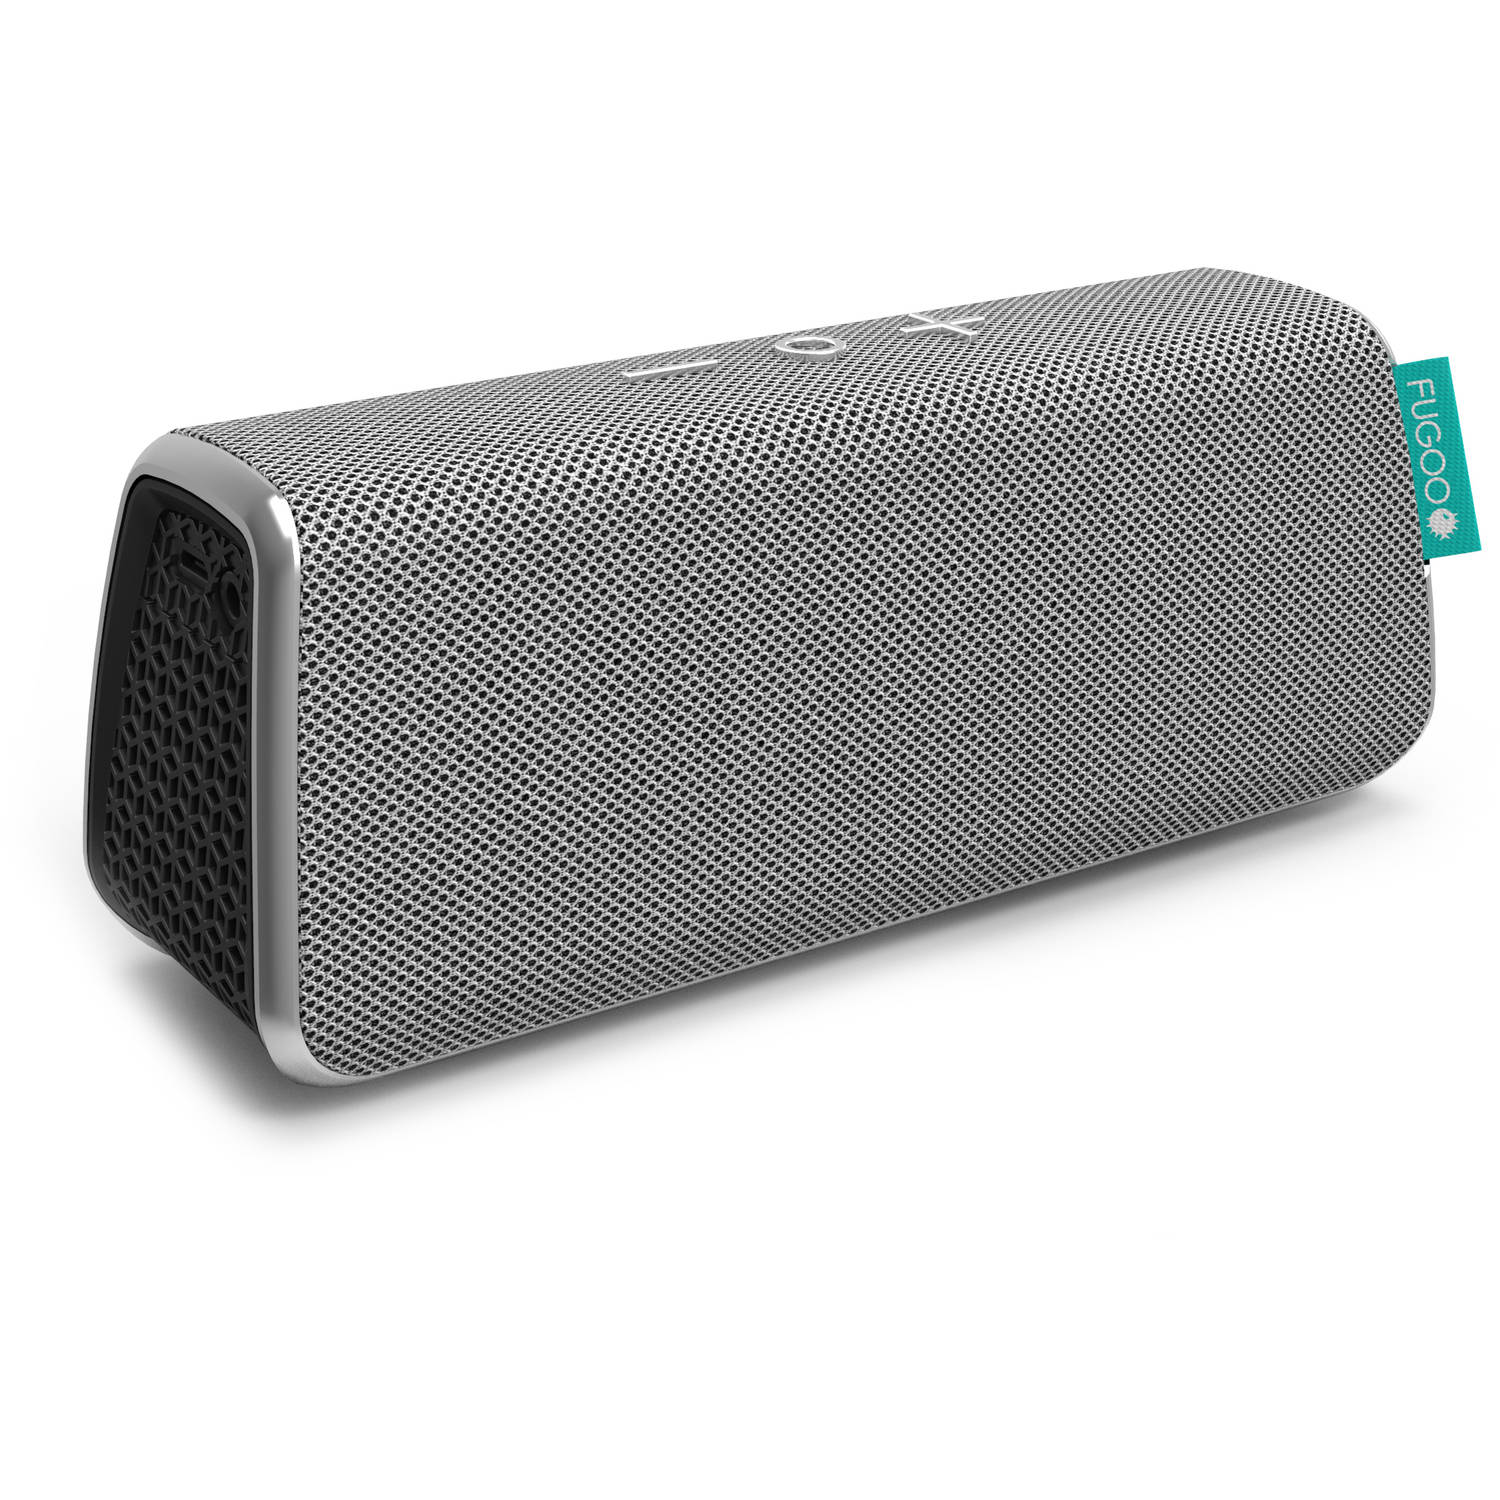 FUGOO VV2475 Style Rechargeable Portable Dust Snow Shock Waterproof Bluetooth Speaker with Built-In Microphone by Fugoo